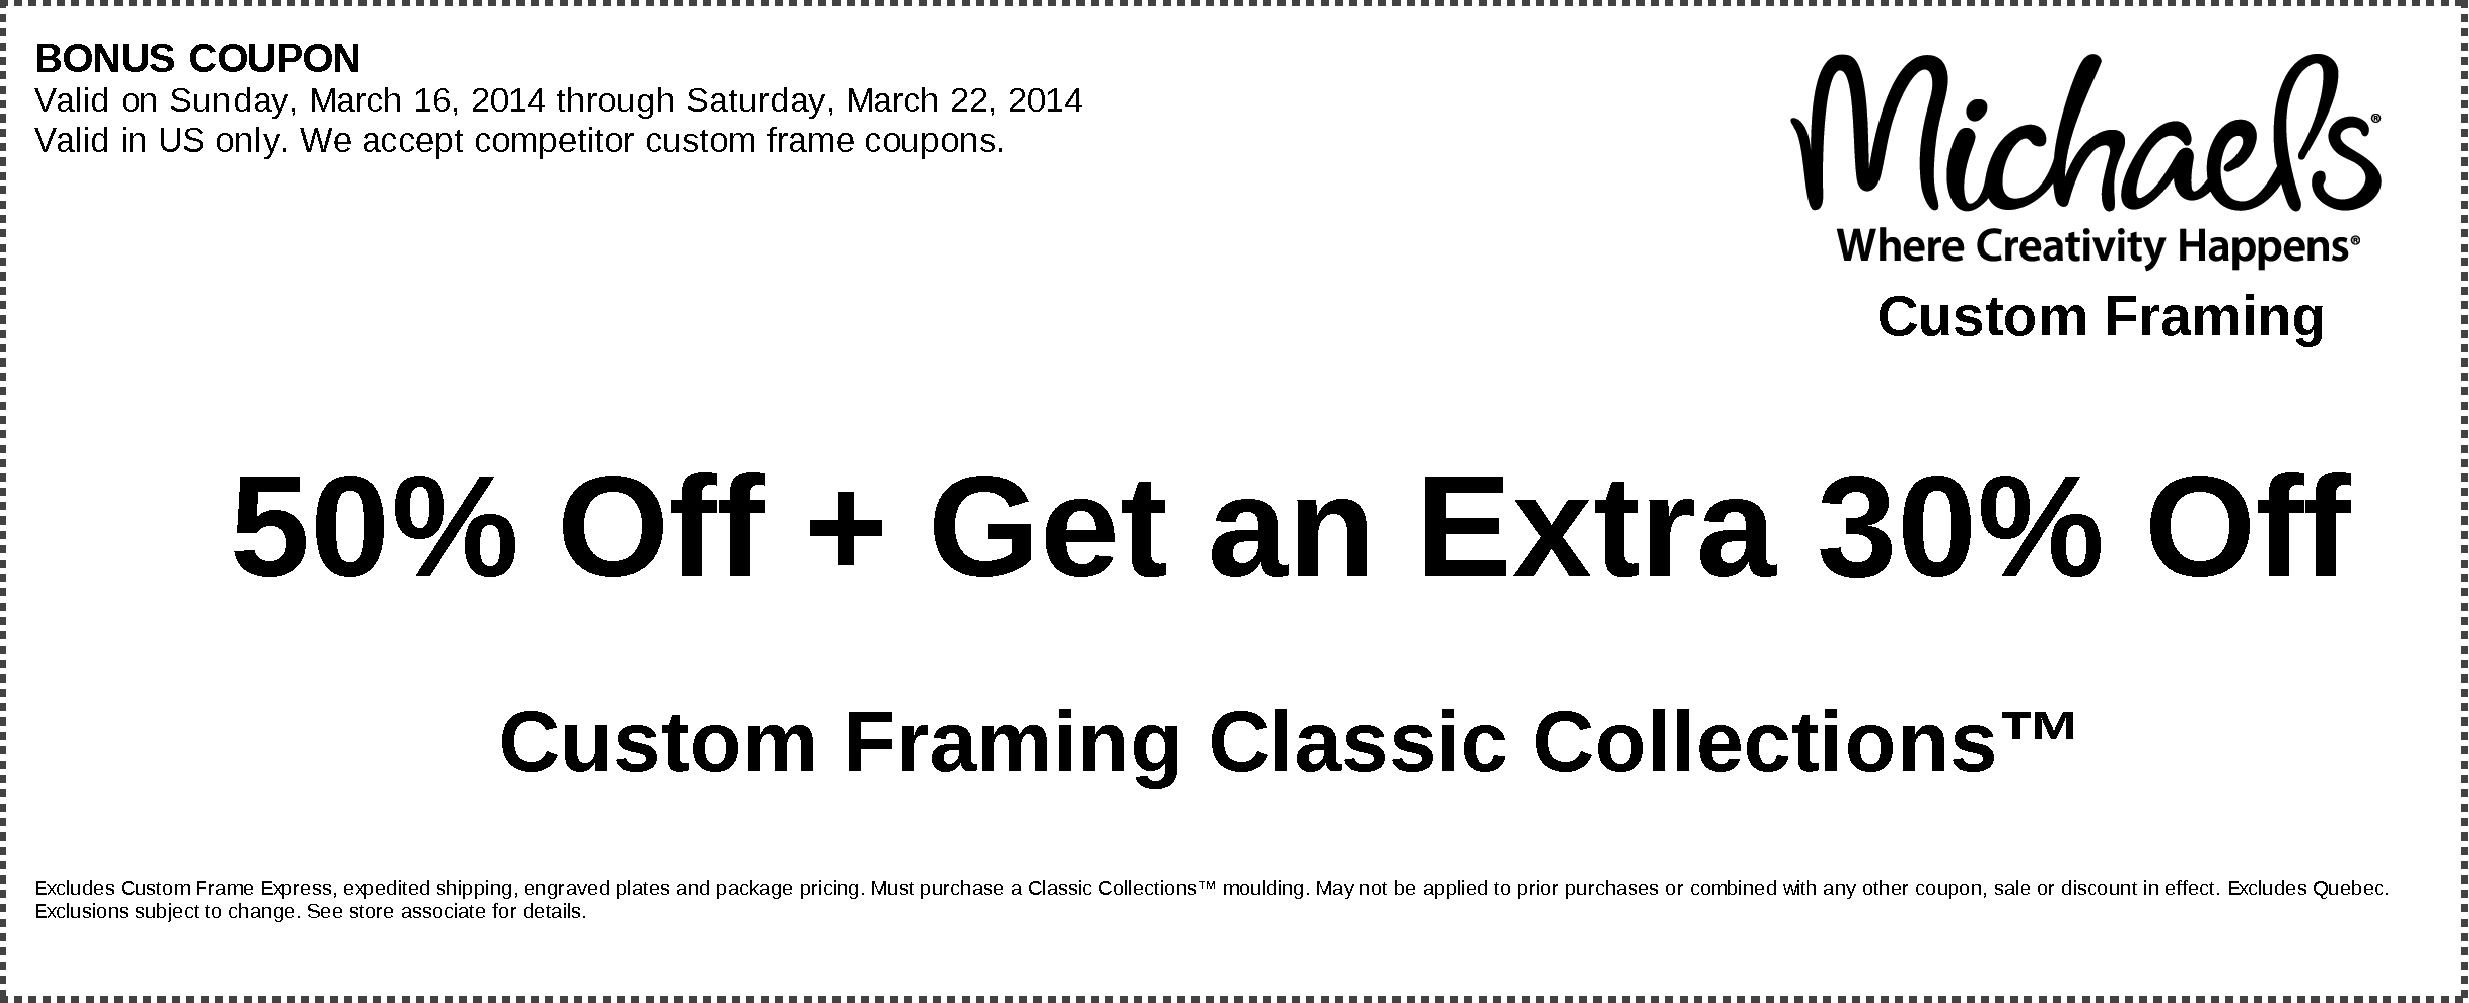 off 30 off custom framing classic collection orders exp 3222014 michaels coupons 40 off 1 regularly priced item exp 3222014